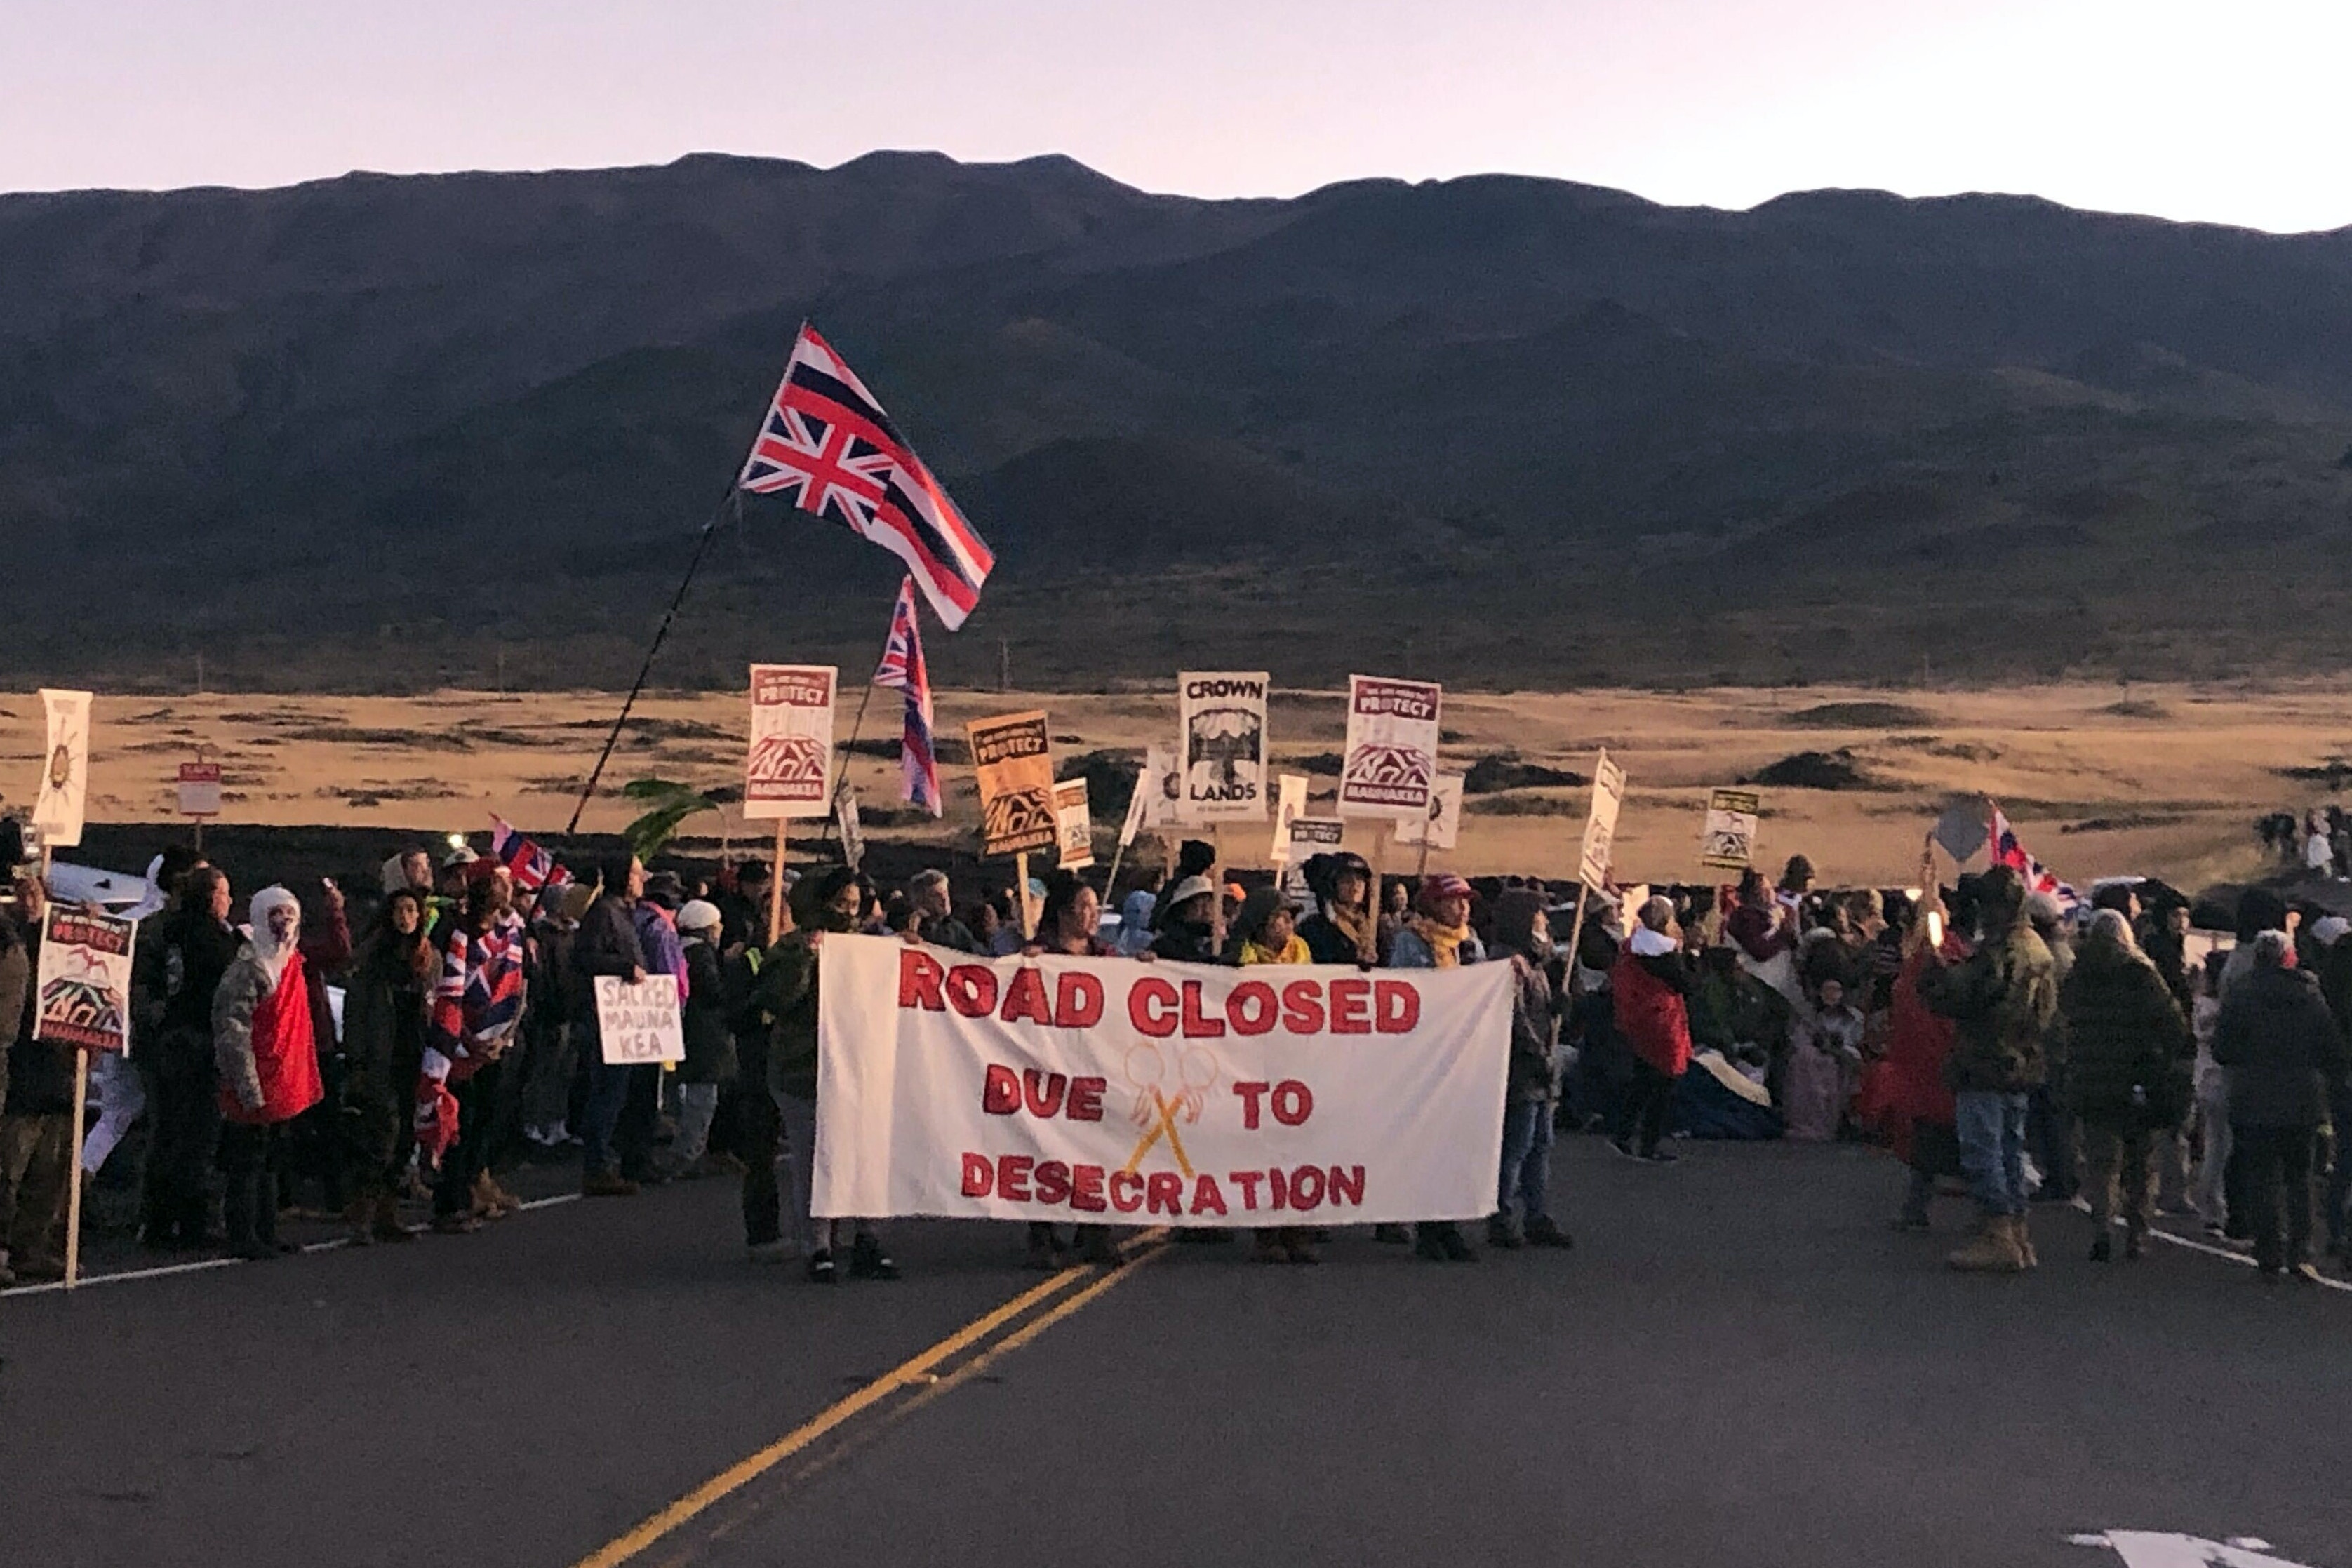 Demonstrators are gather to block a road at the base of Hawaii's tallest mountain, Monday, July 15, 2019, in Mauna Kea, Hawaii, to protest the construction of a giant telescope on land that some Native Hawaiians consider sacred. (AP Photo/Caleb Jones)